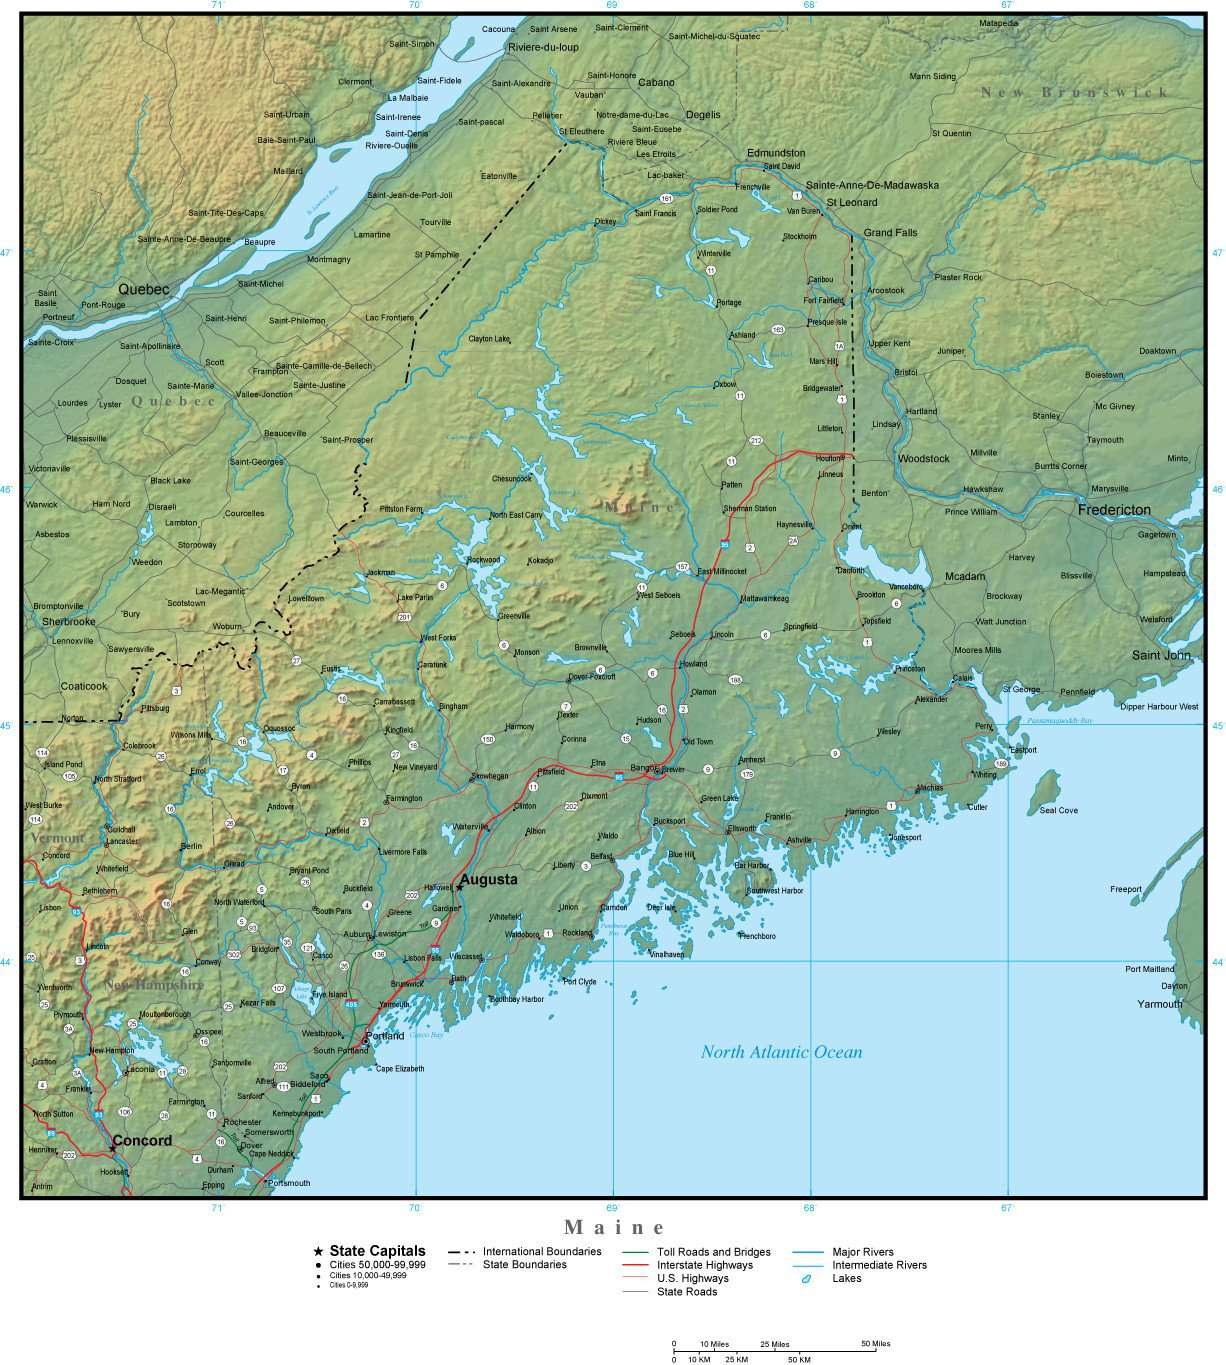 Maine State Map Plus Terrain with Cities & Roads – Map Resources